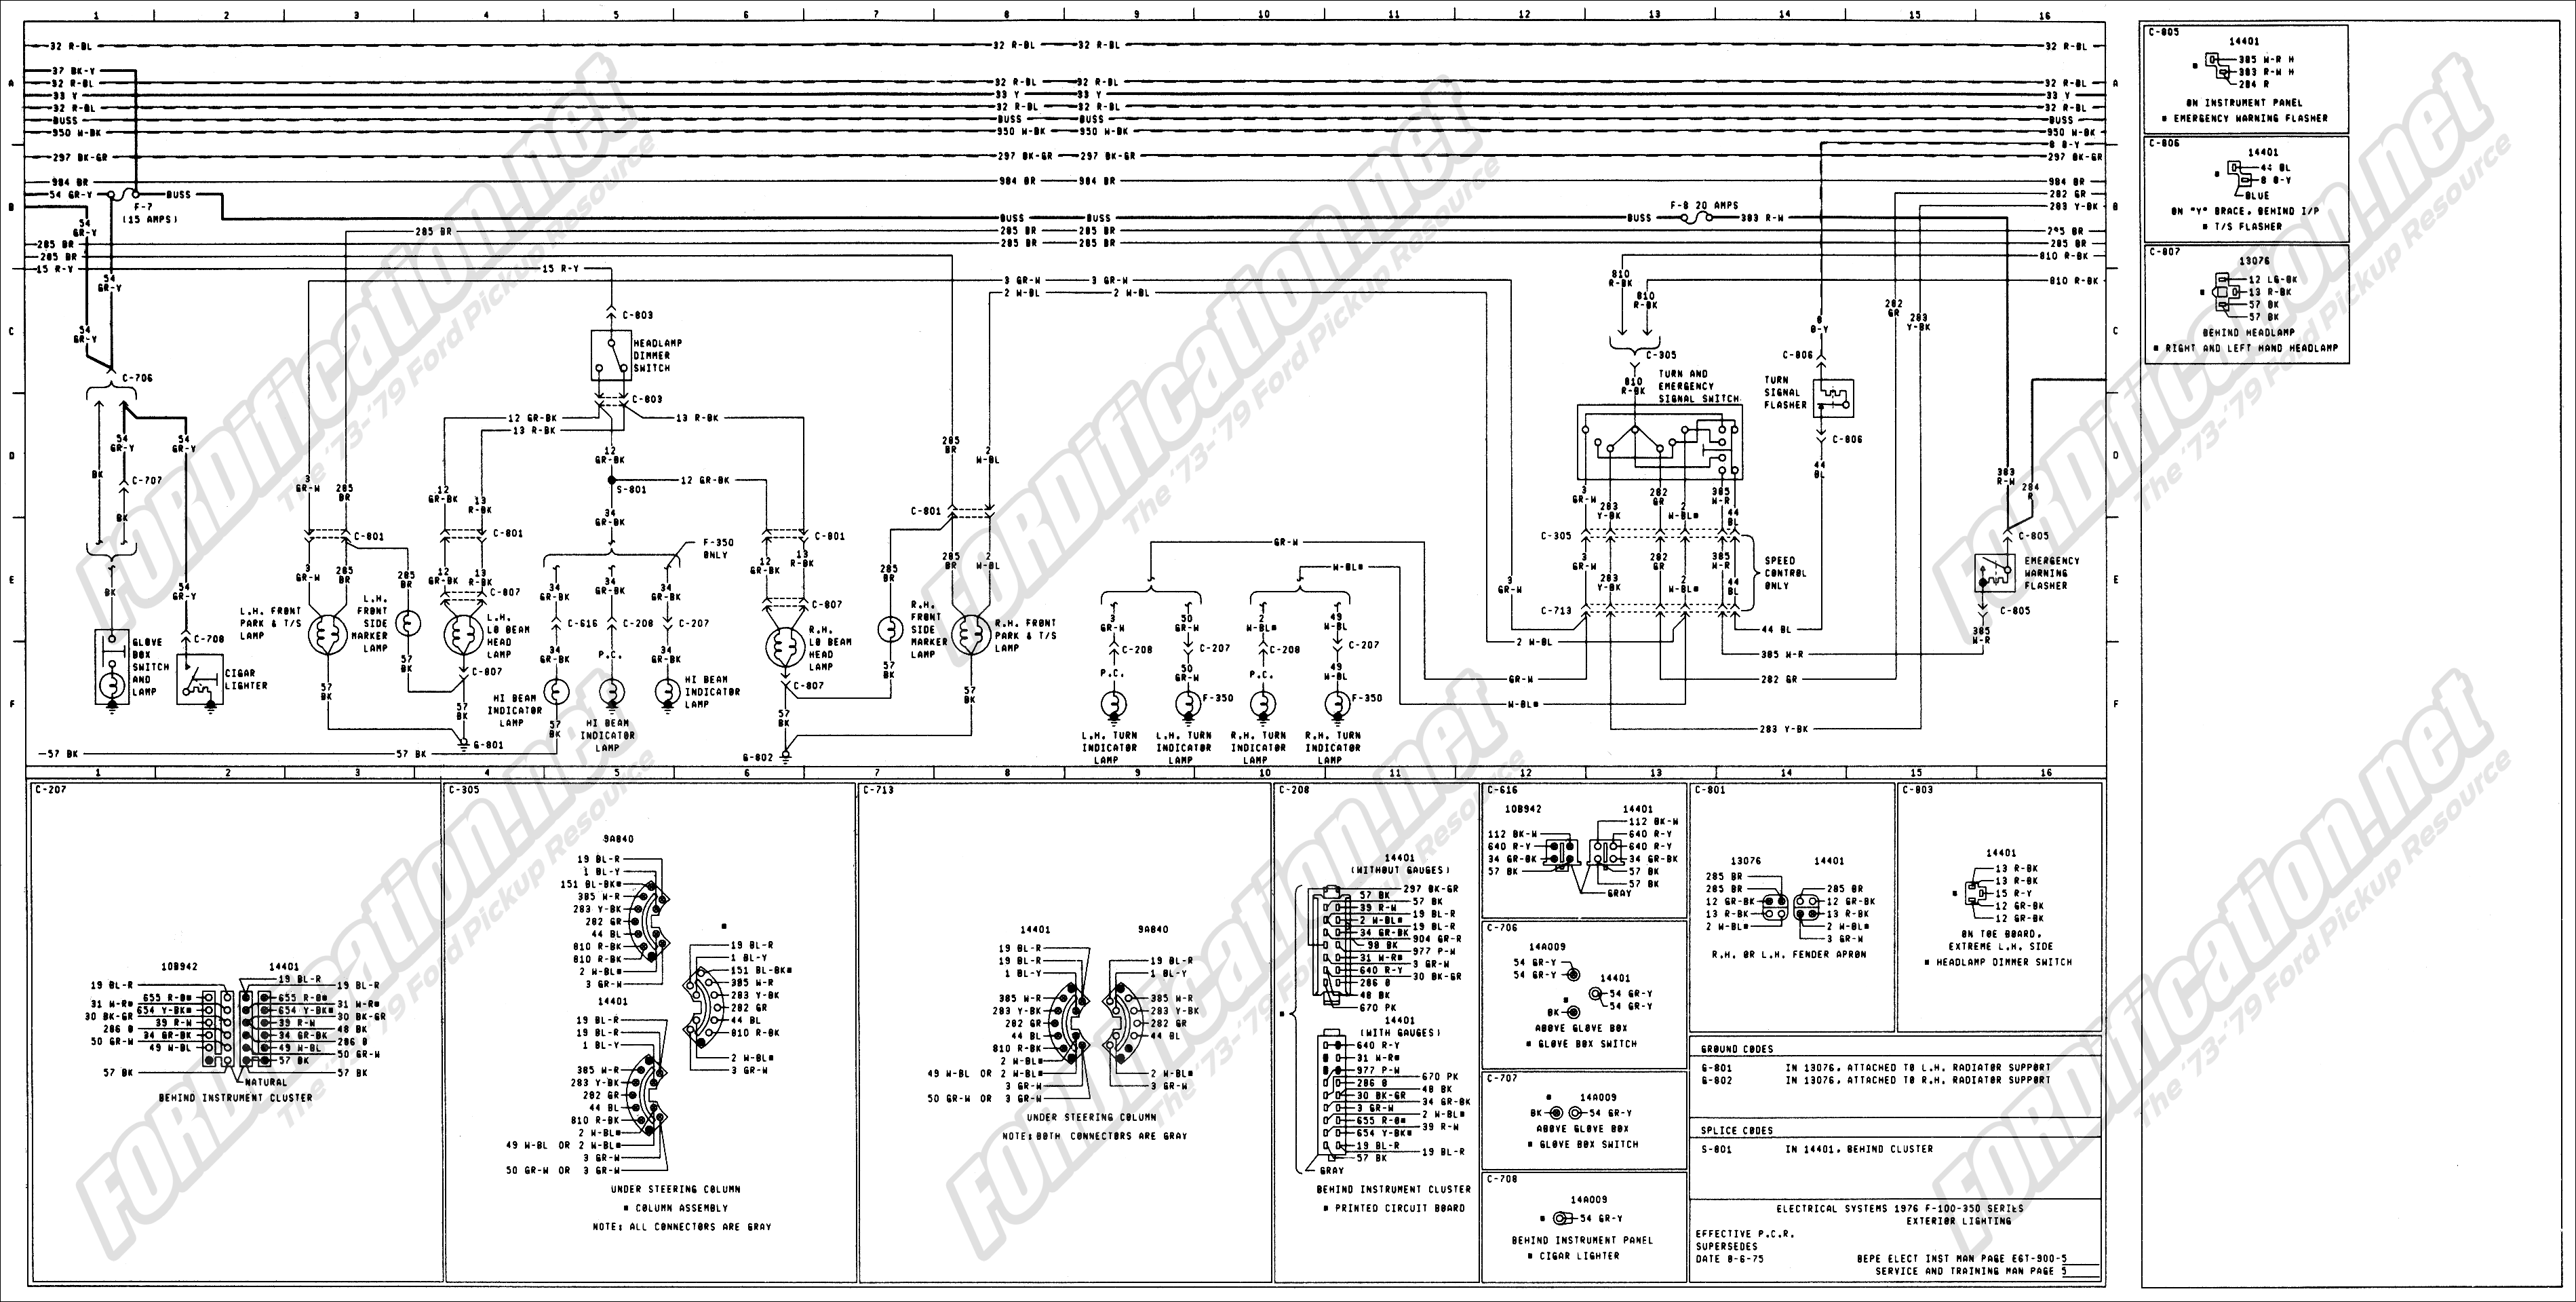 1975 ford truck wiring diagrams just wiring data rh ag skiphire co uk